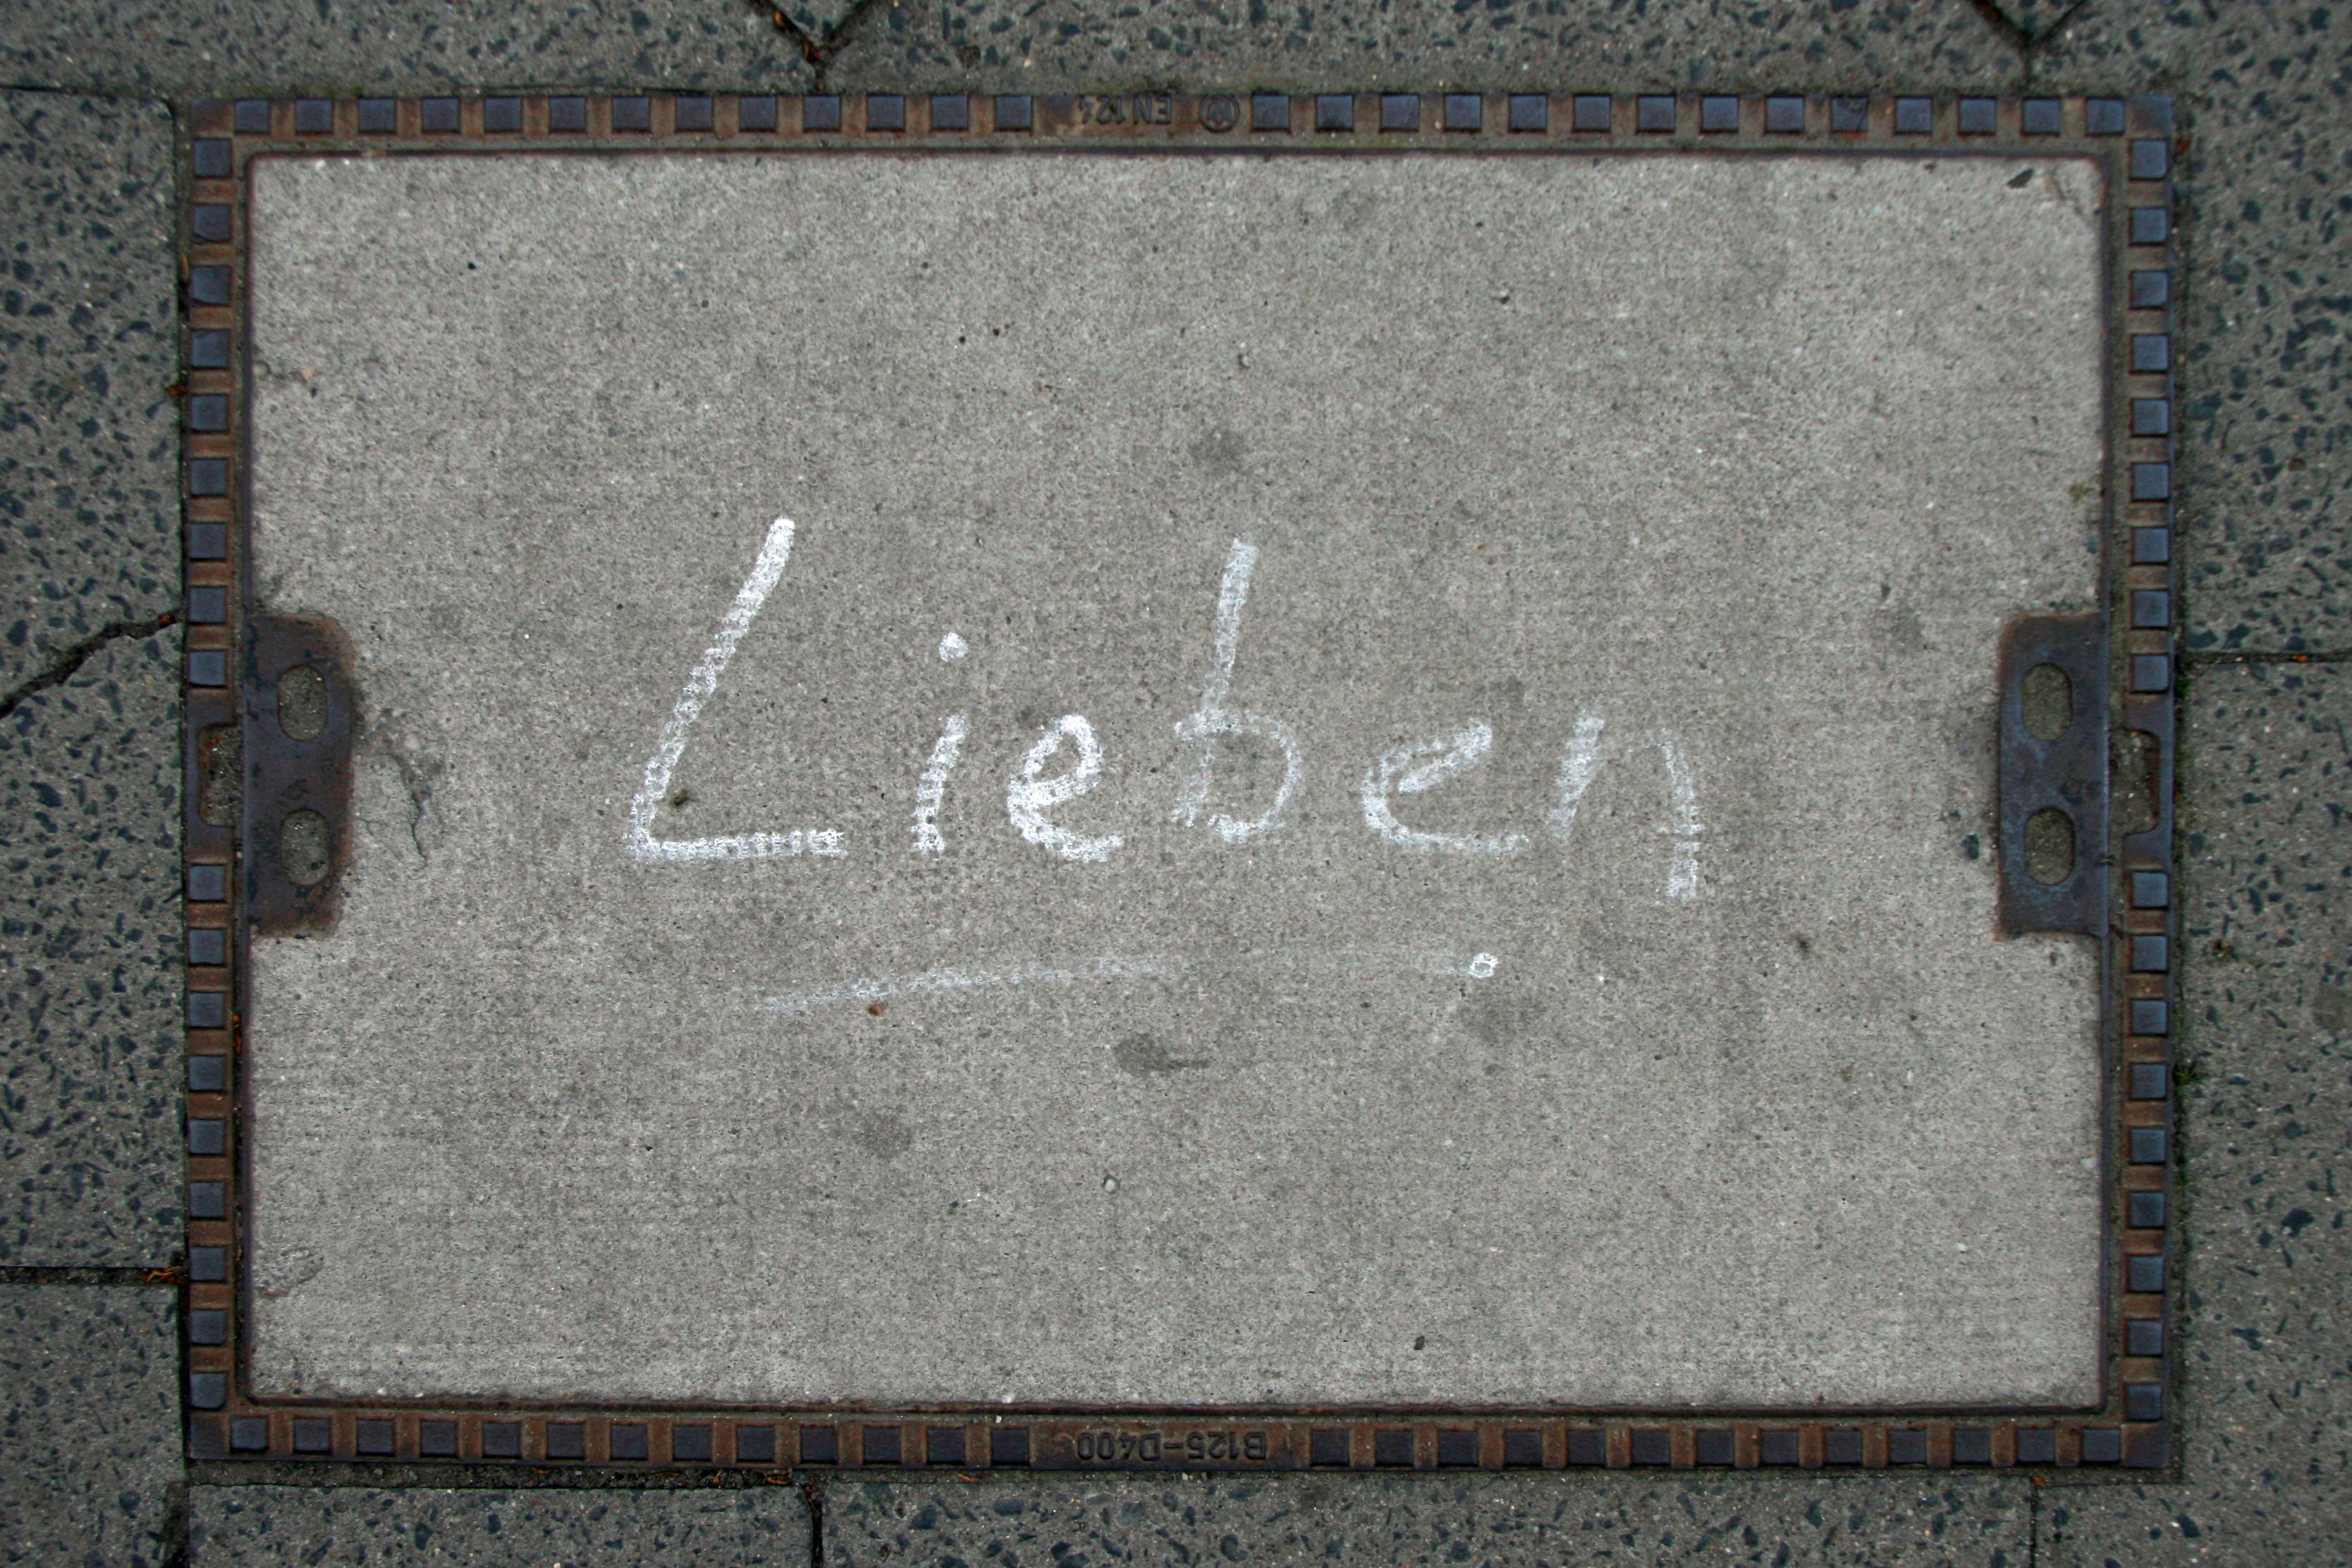 Lieben (Leibniz): Street Art by Unknown Artist in Berlin